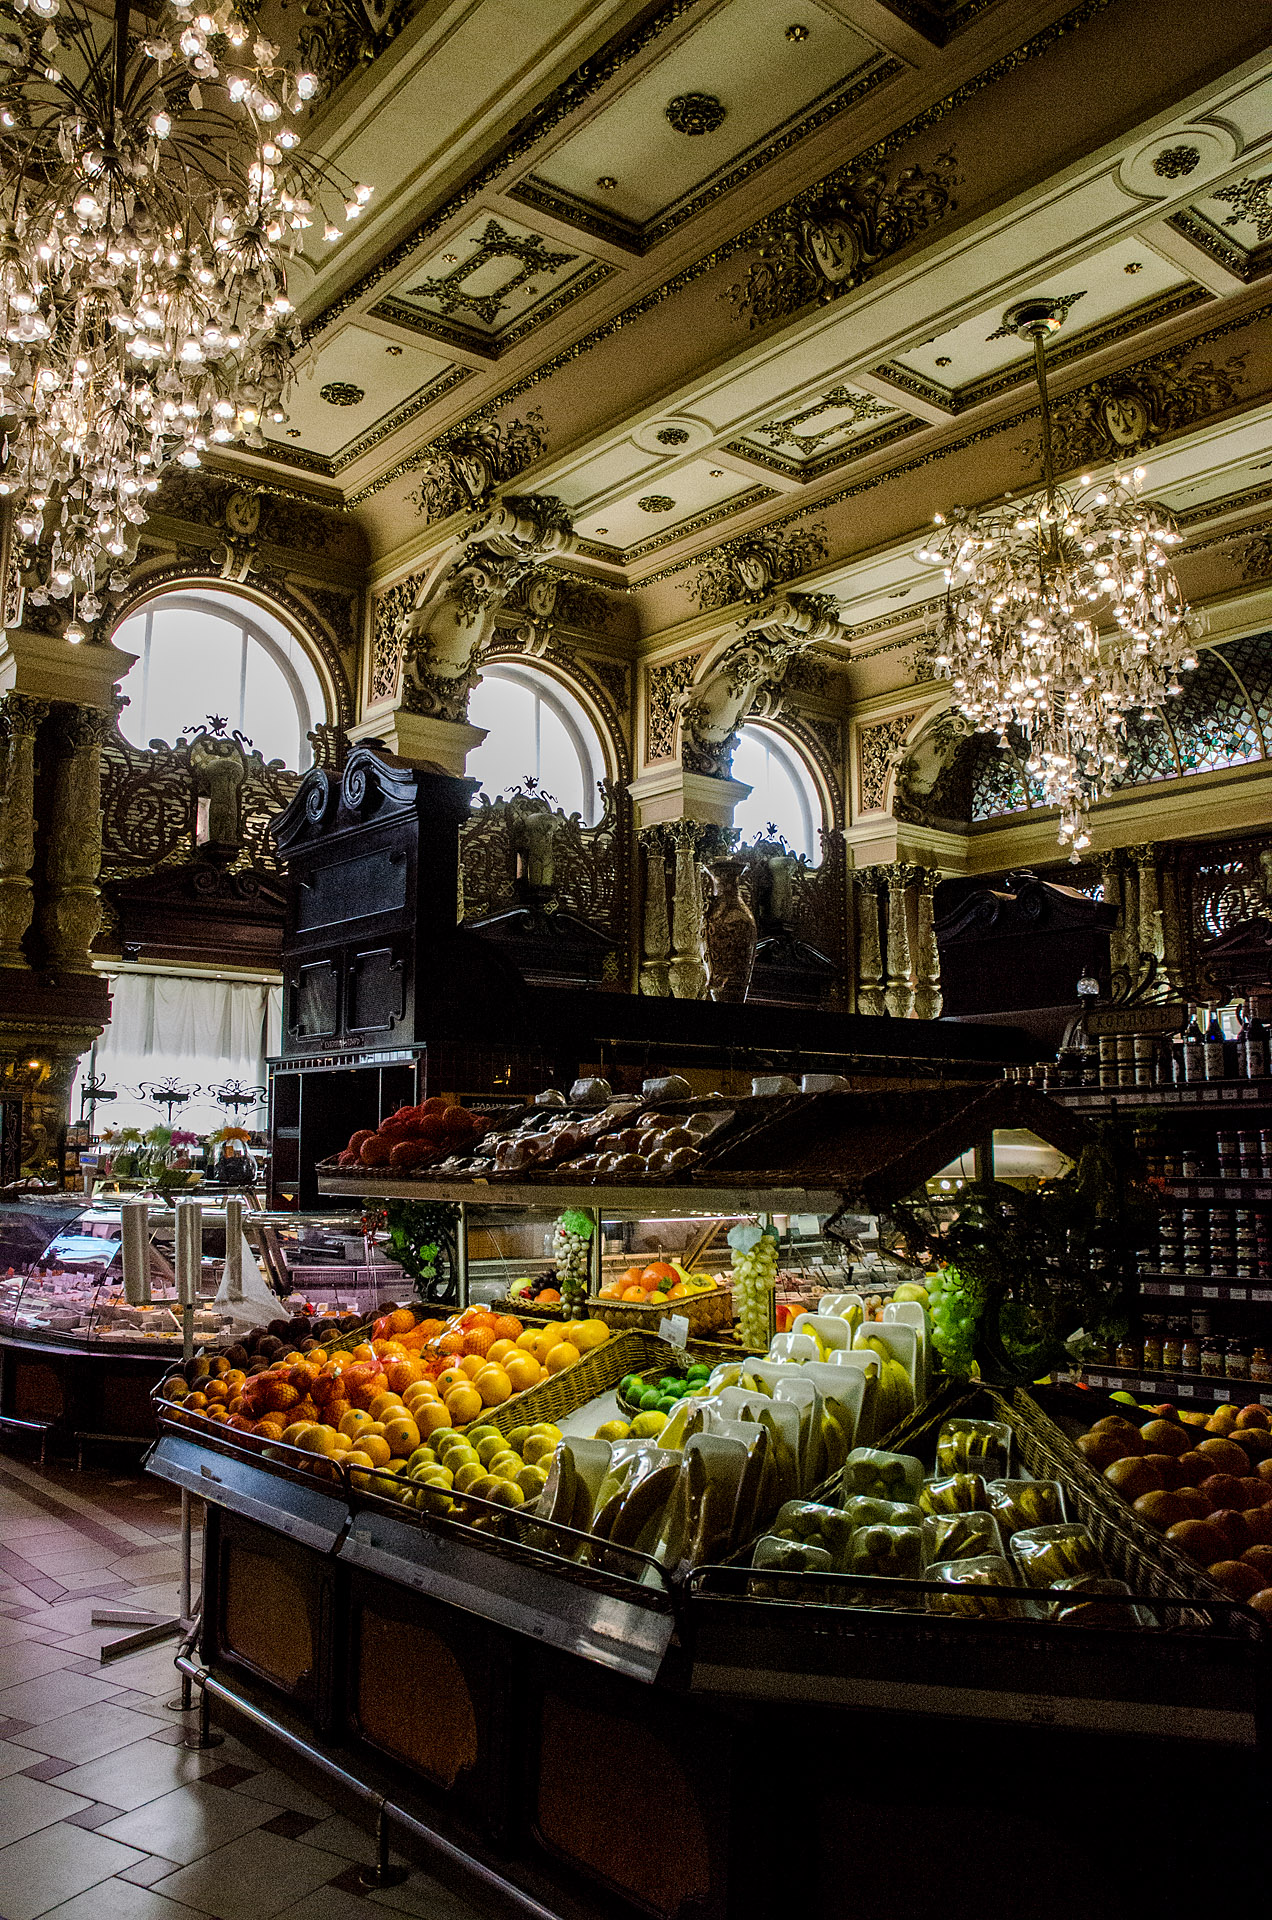 World's prettiest grocery?